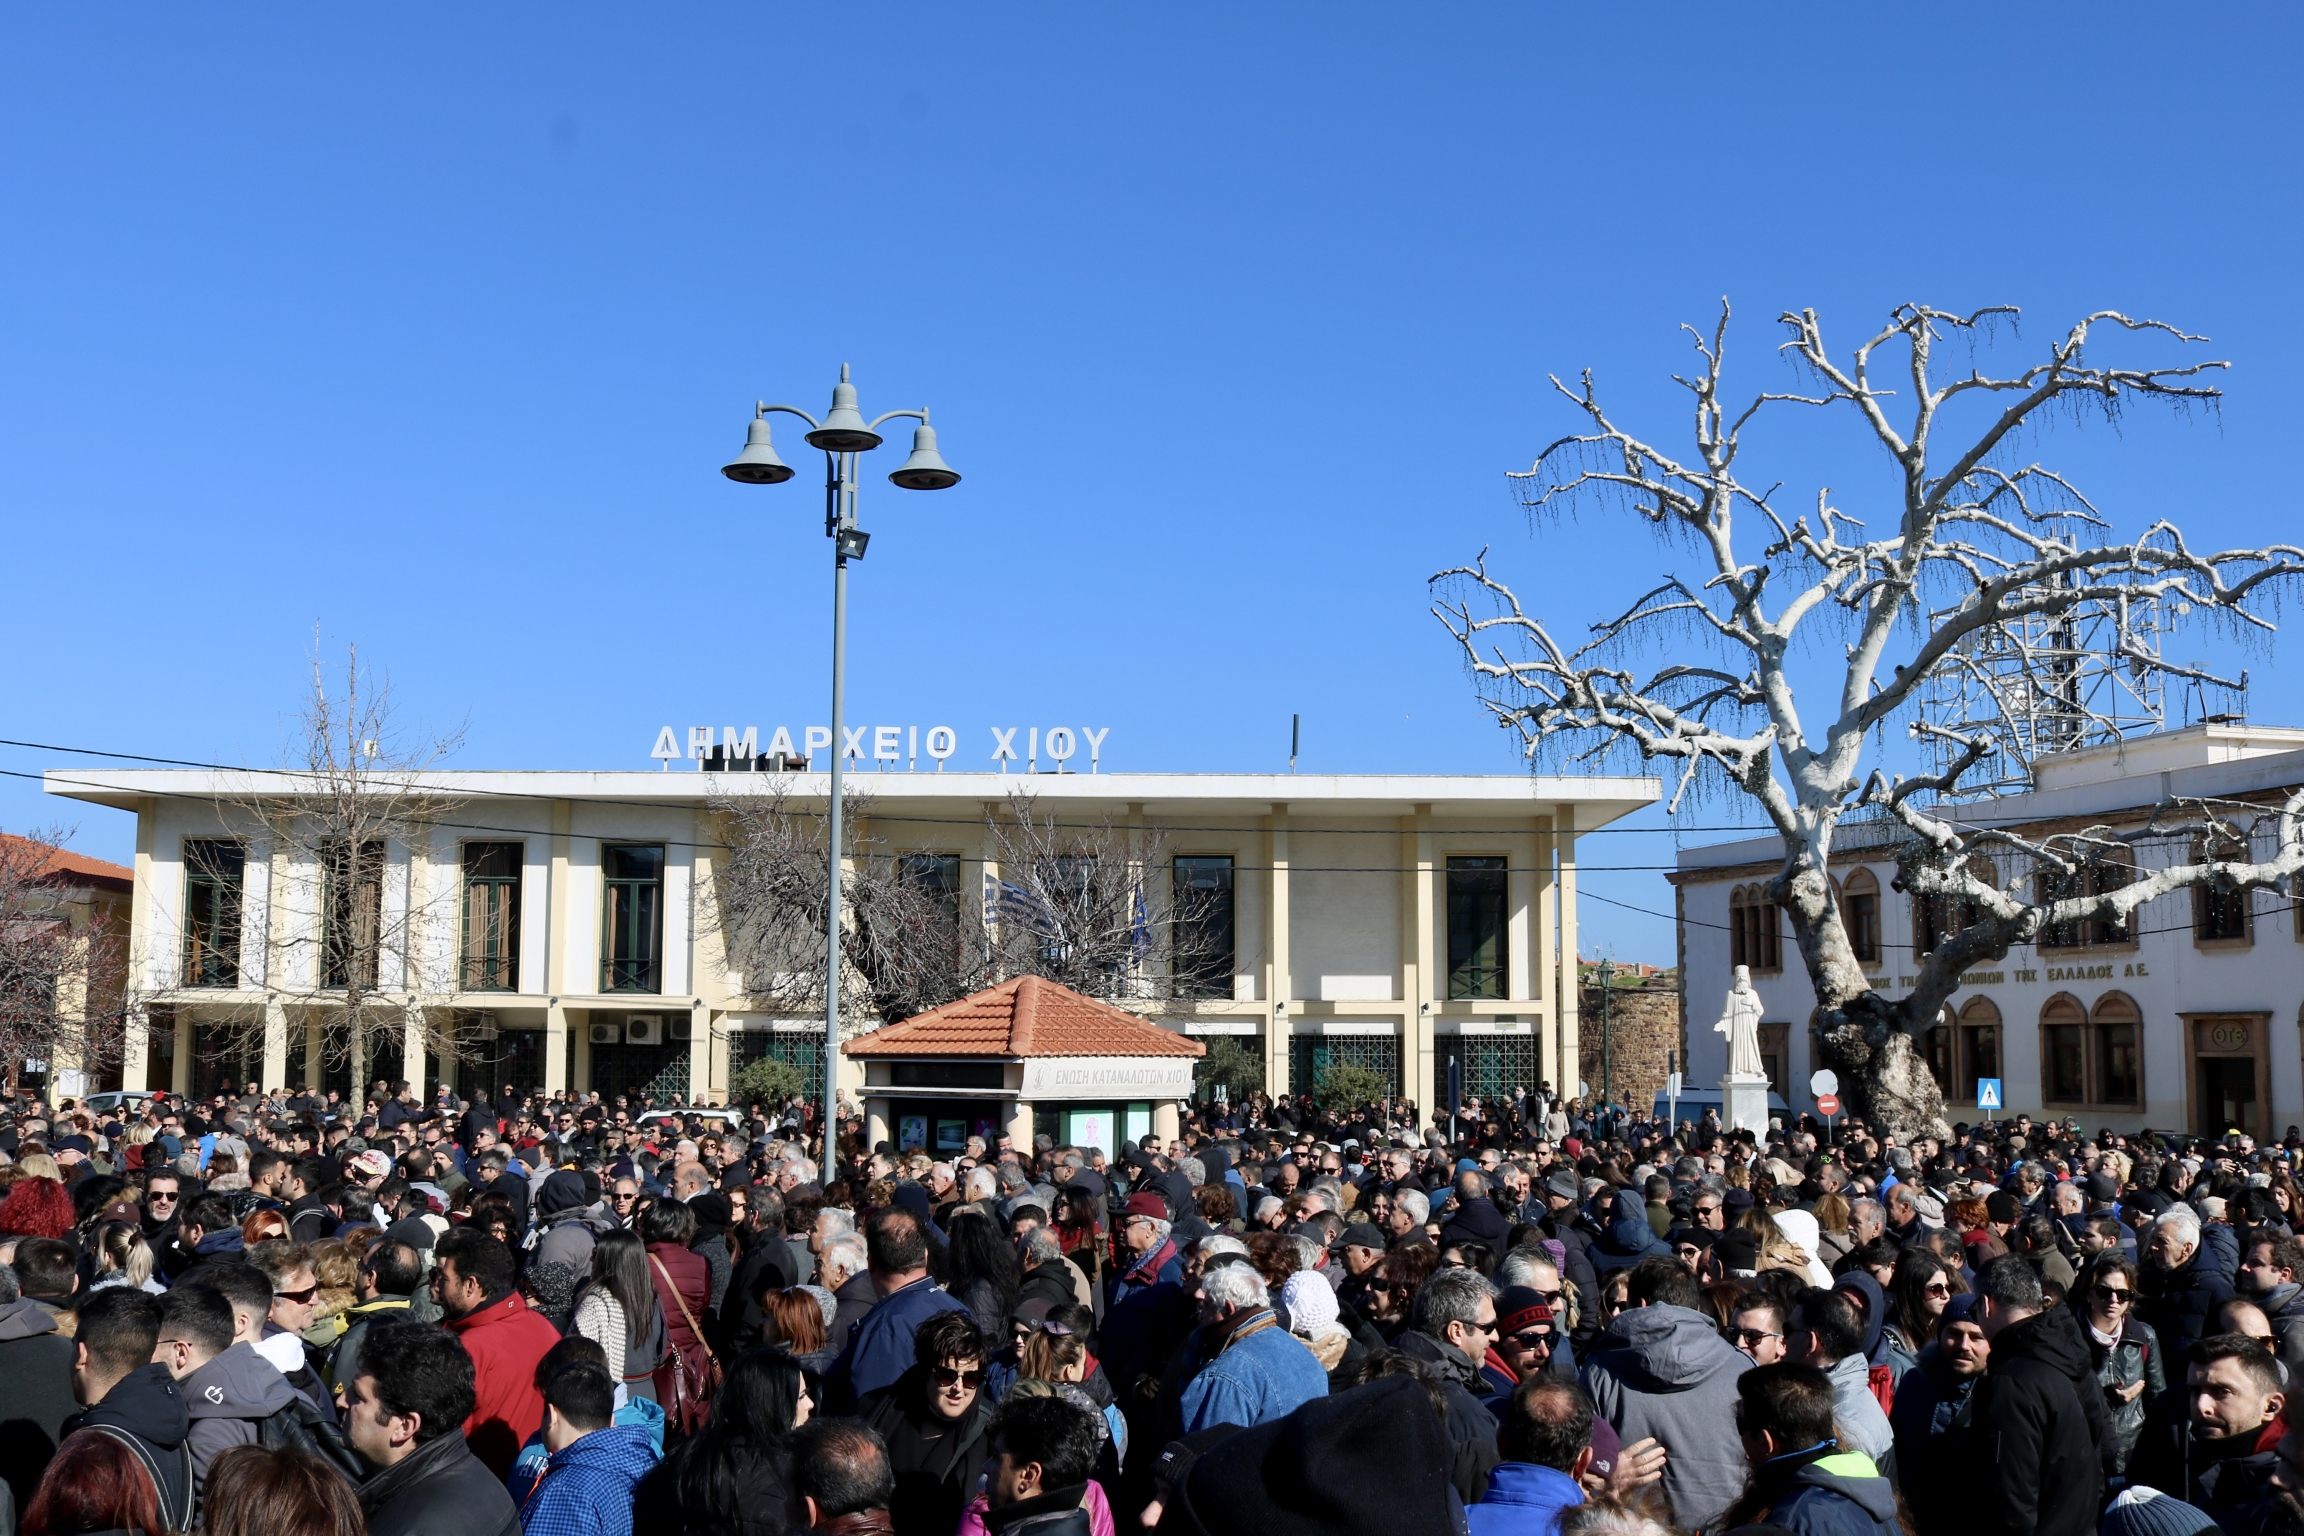 Residents of Chios gather in the town square on on Jan. 22, 2020 ,in protest to the planned construction of closed migrant detention camps on the island.